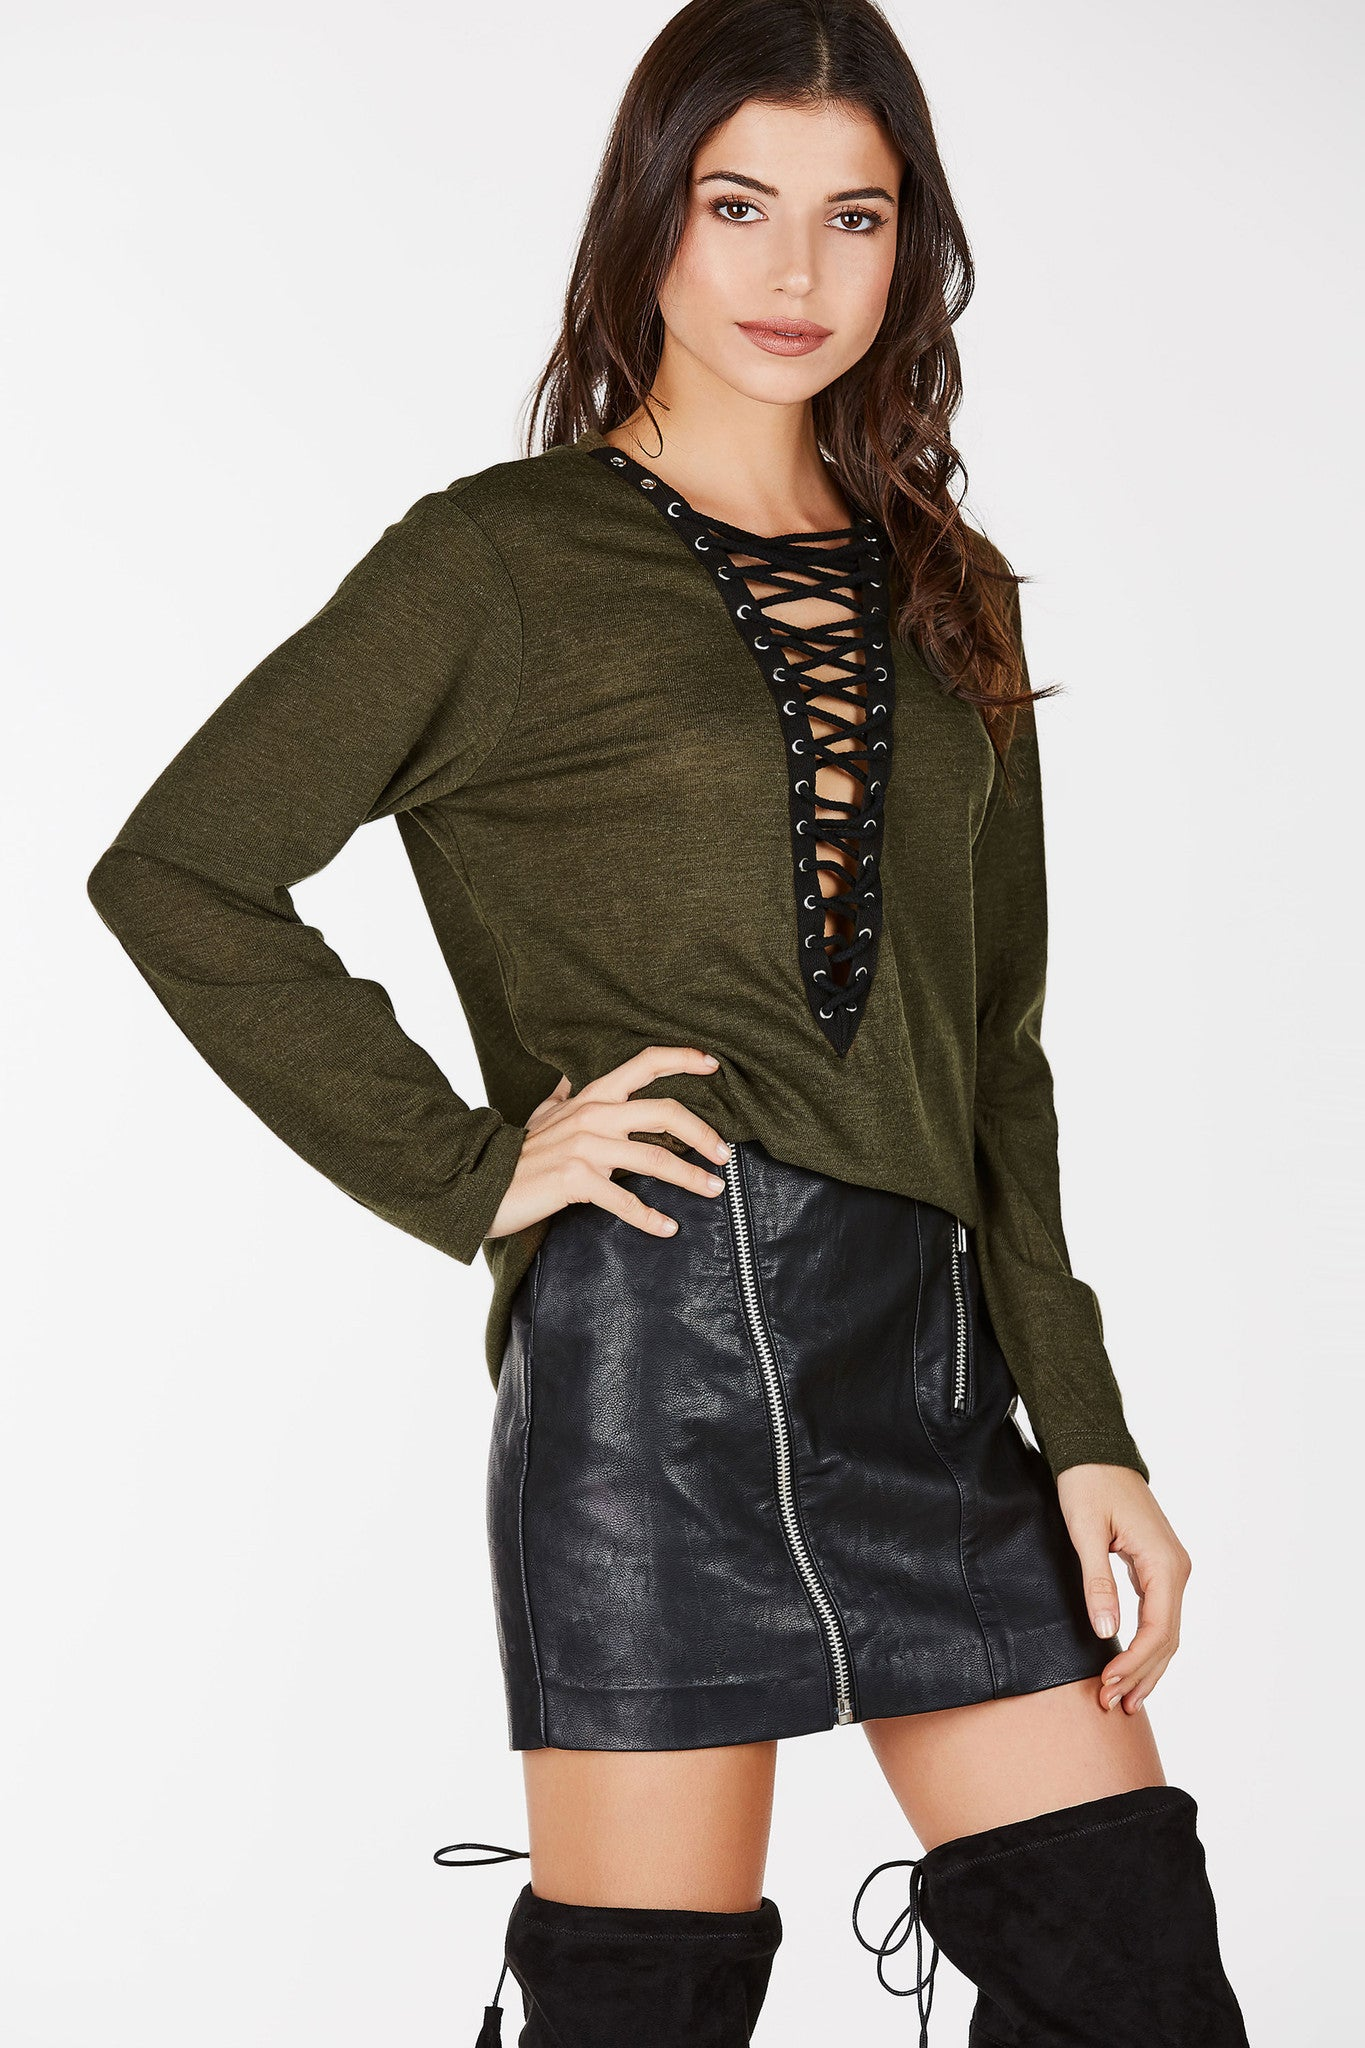 Longline, lace up top with plunging neckline.  Perfect for a casual look.